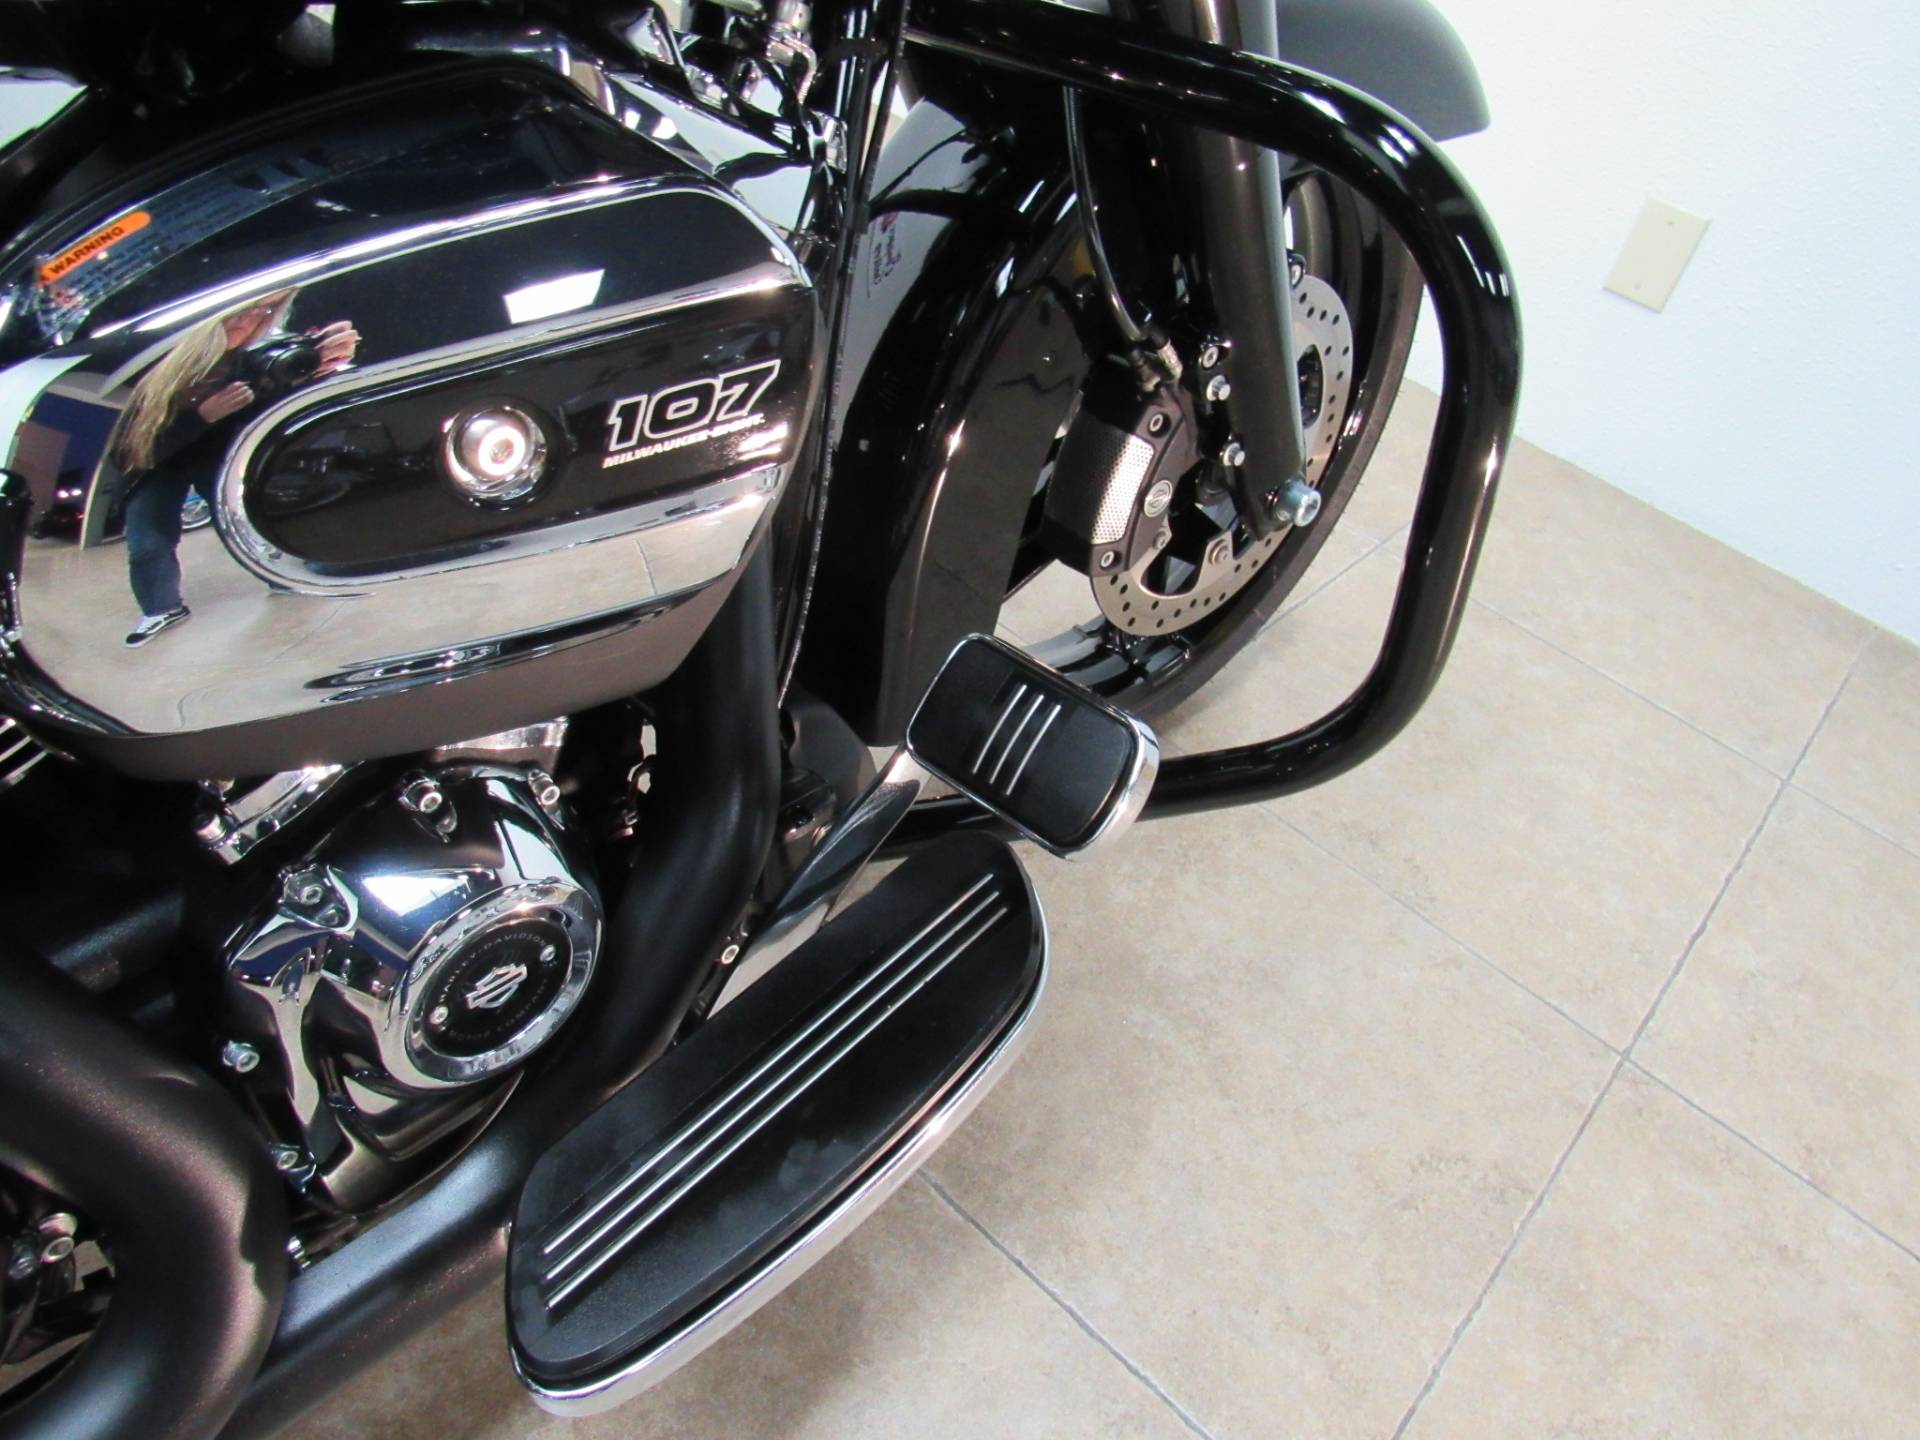 2017 Harley-Davidson Street Glide® Special in Temecula, California - Photo 18